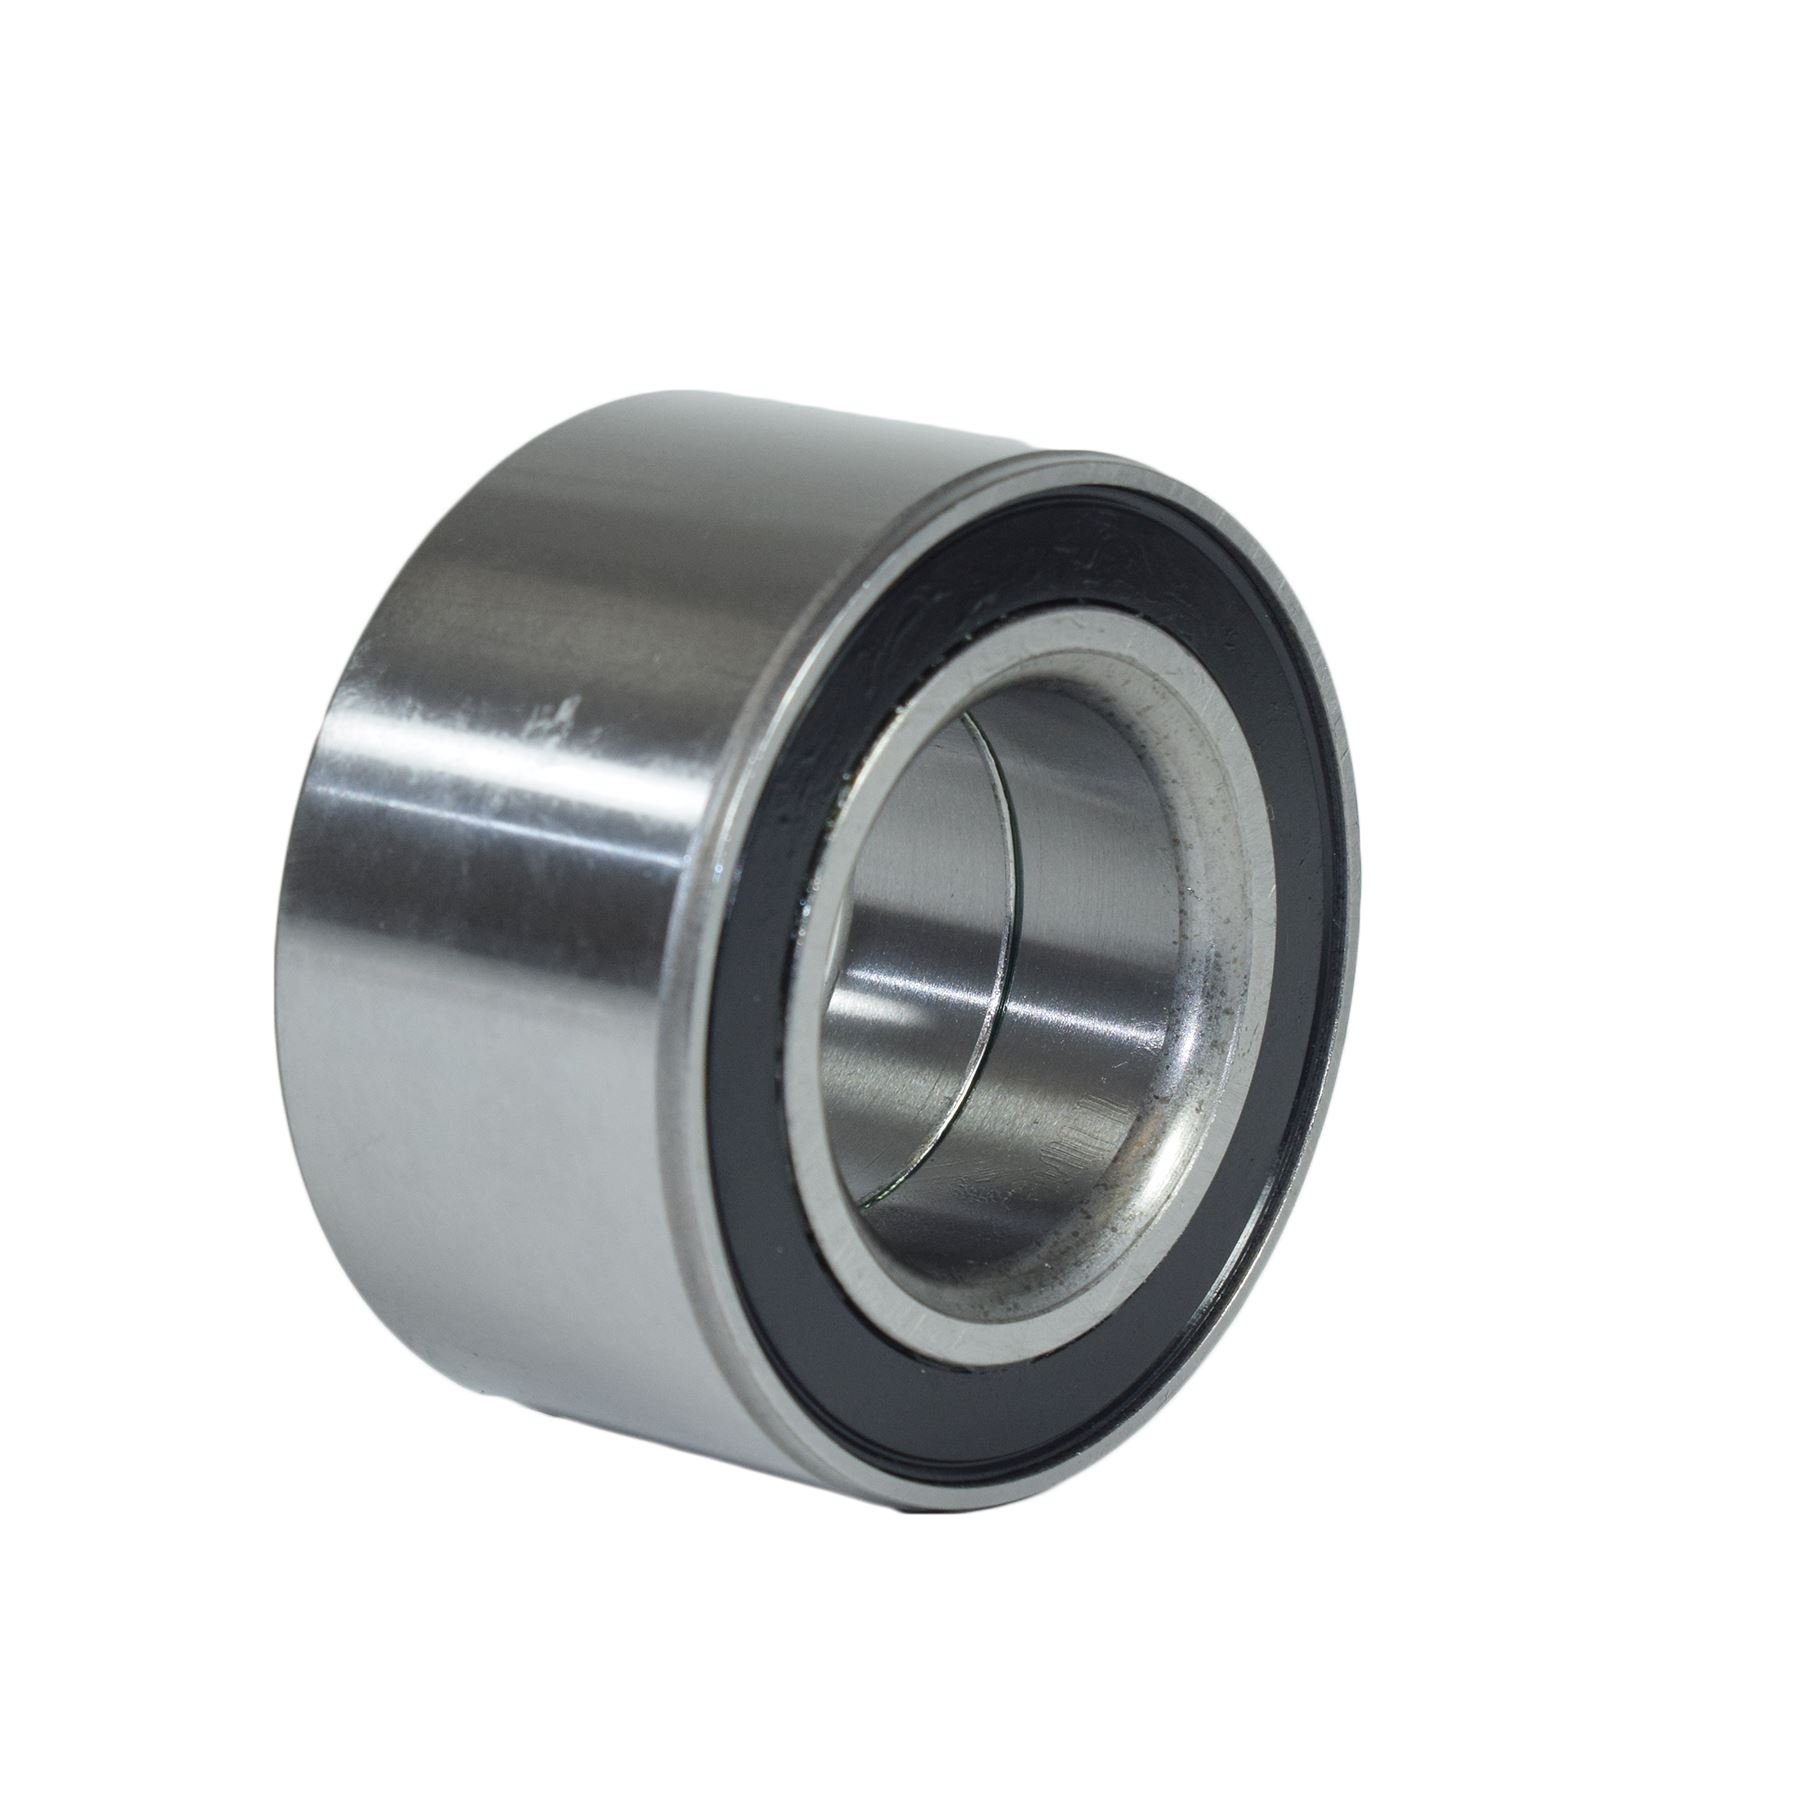 AB Tools Trailer Sealed Bearing Hubs Knott Avonride 45887.11 ALKO 581169 ID39 OD72 W37mm by AB Tools